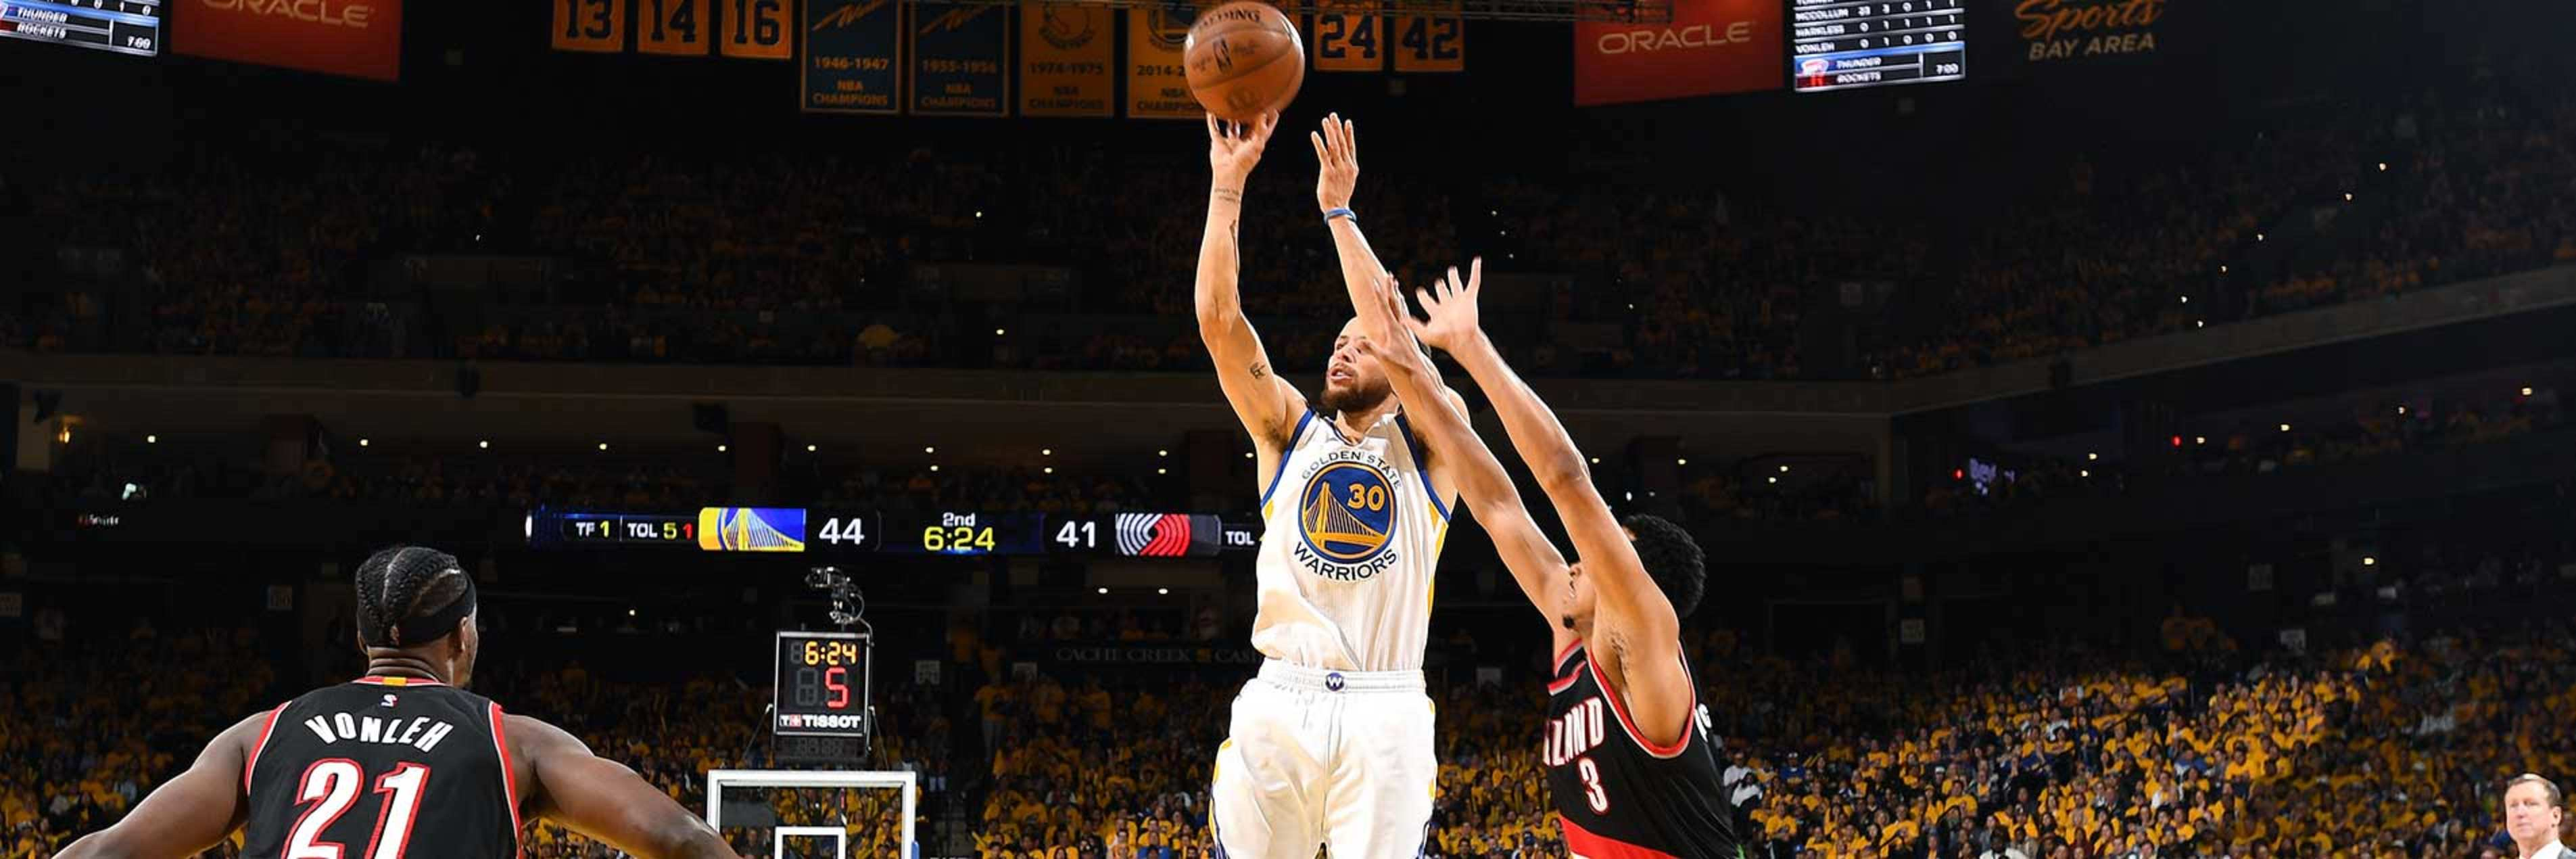 Warriors Use Fourth Quarter Burst to Beat Blazers | Golden State ...